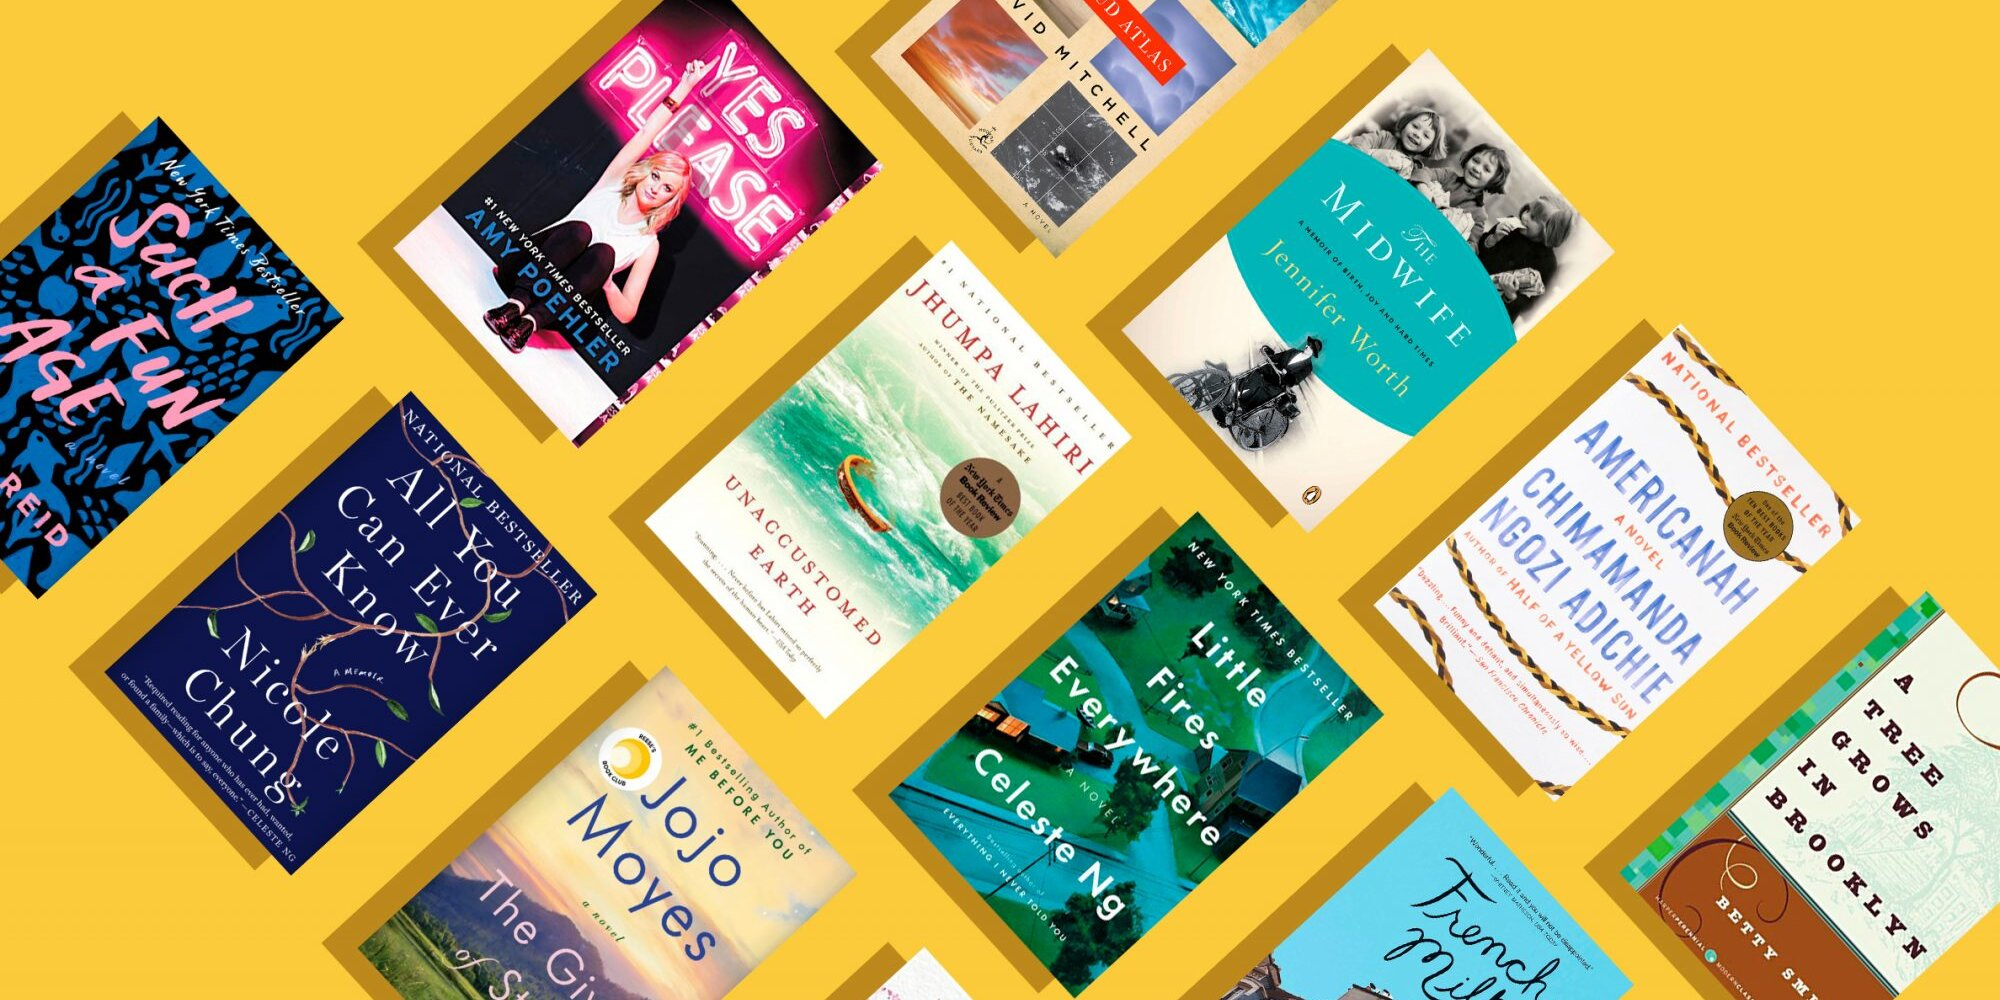 12 Books Both You and Your Mom Will Love